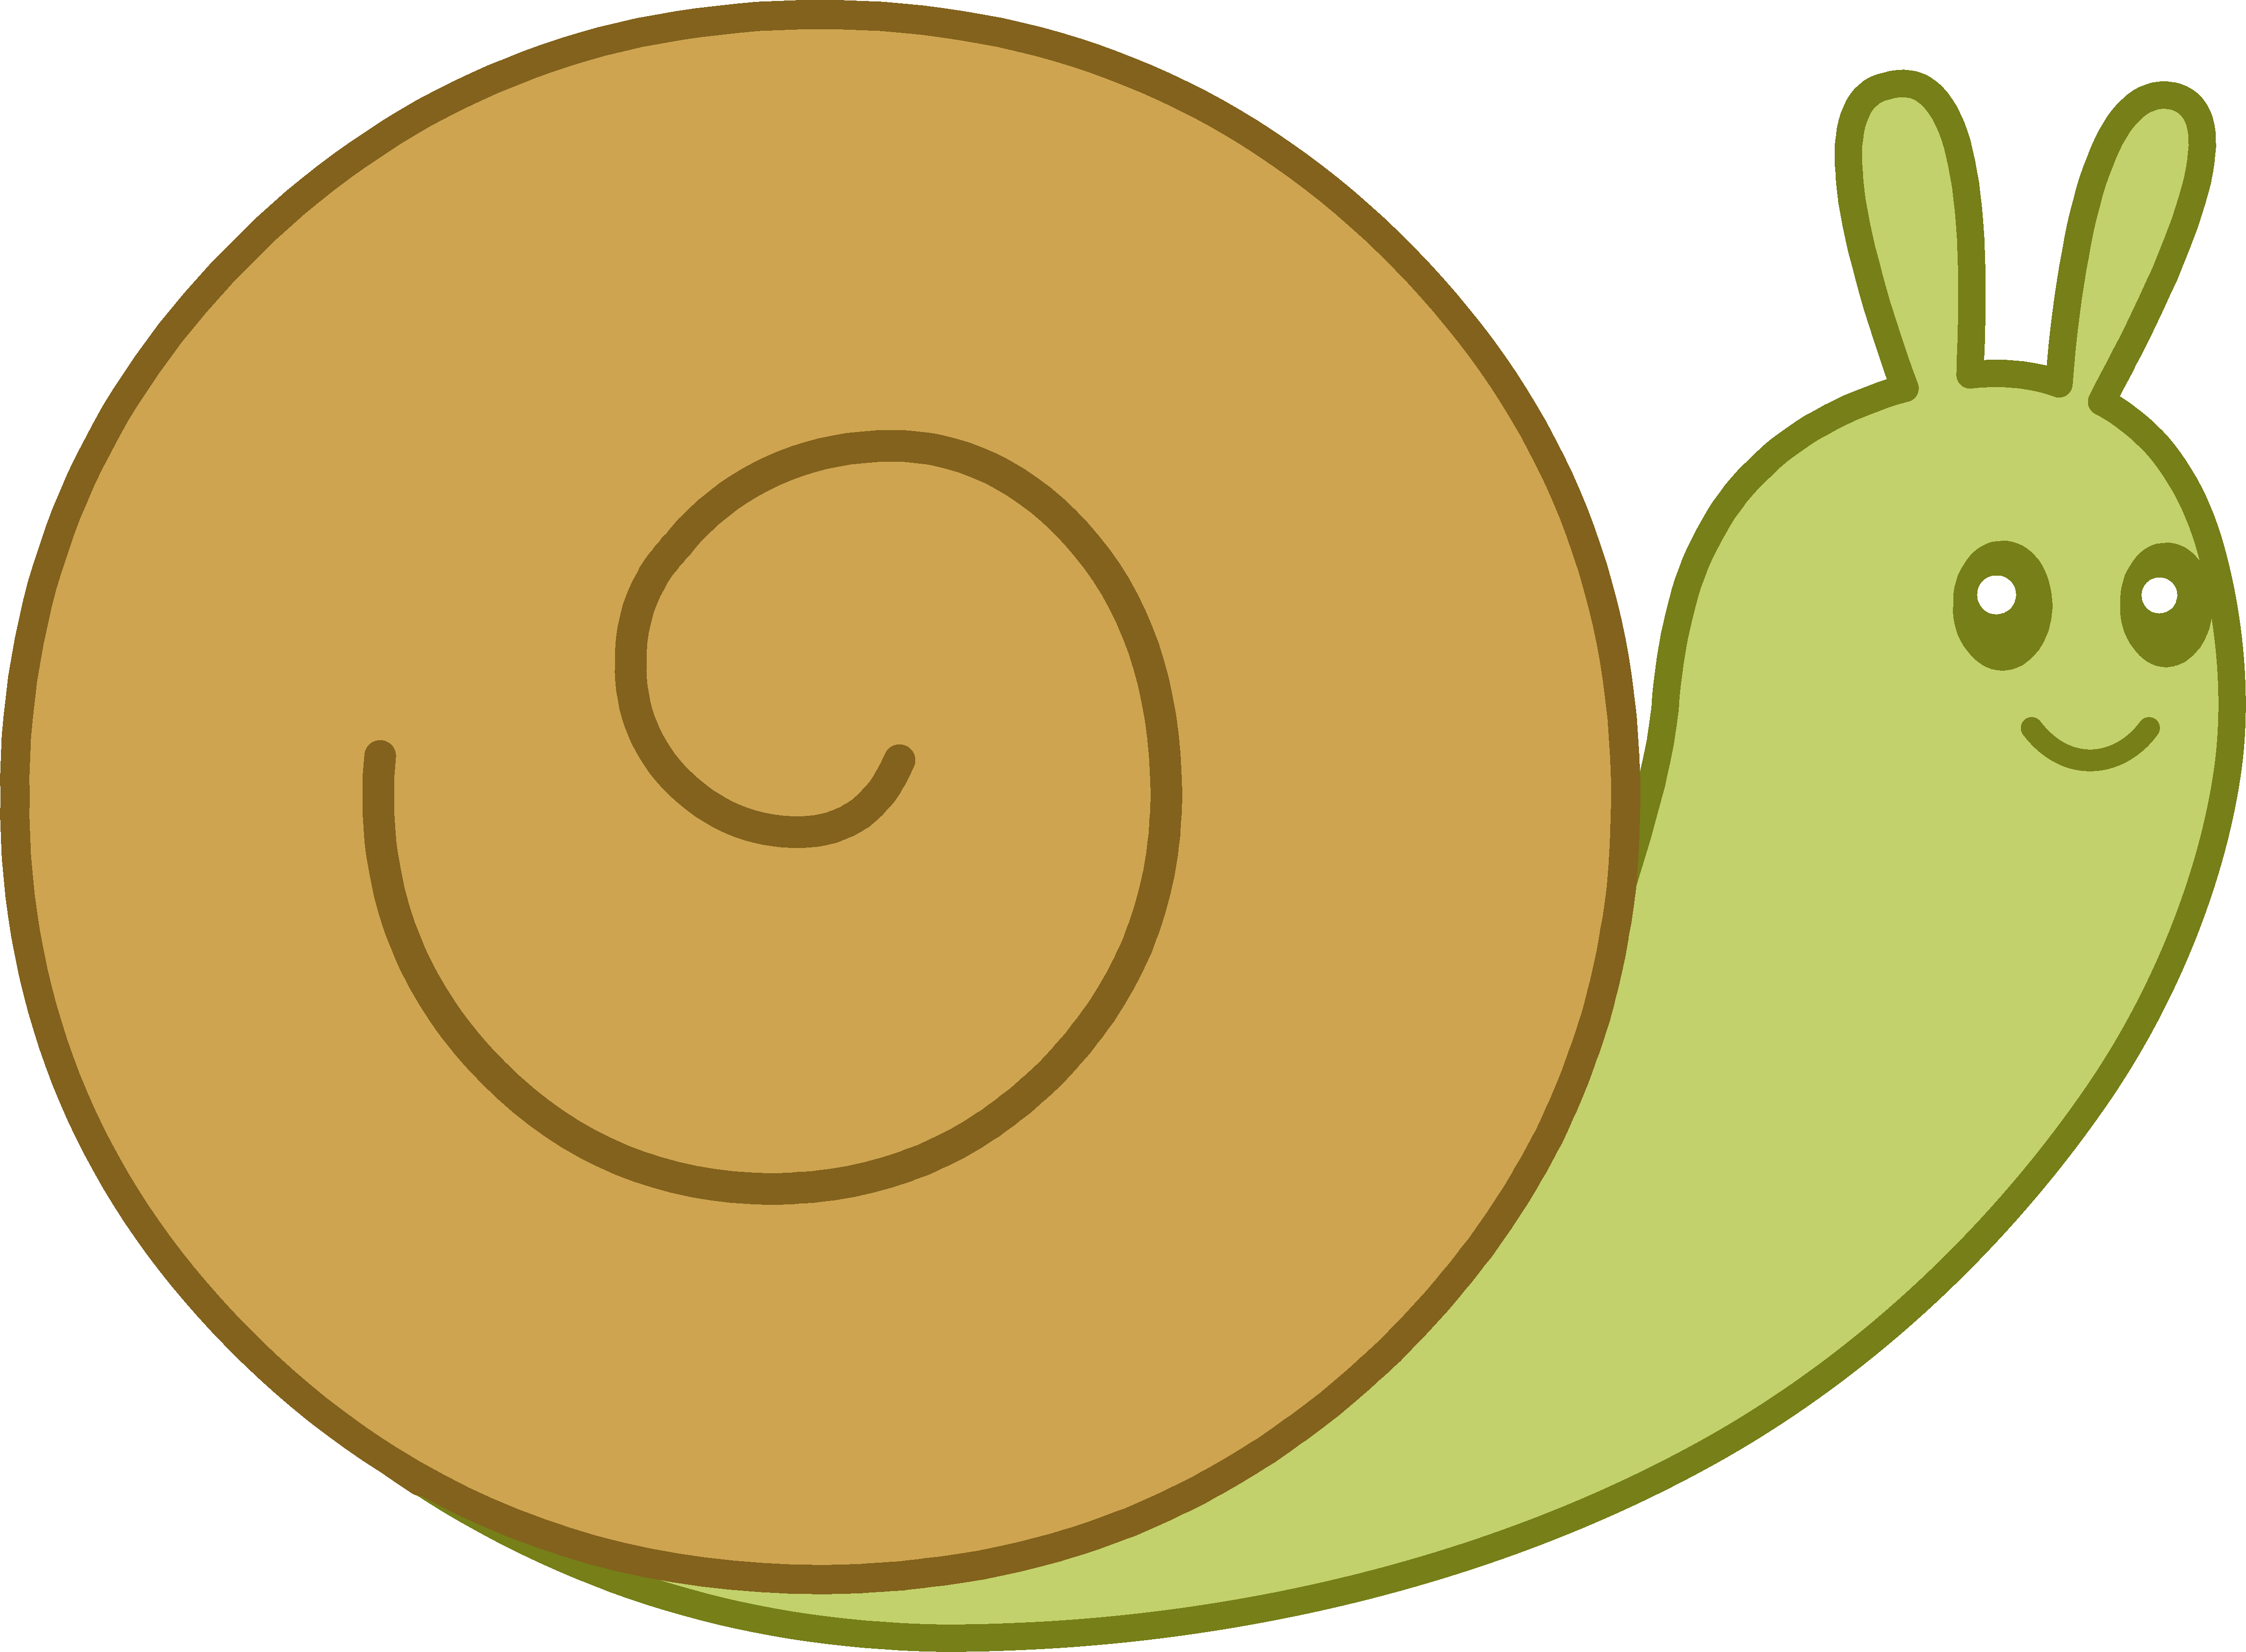 clip art free library Cute Brown and Green Snail